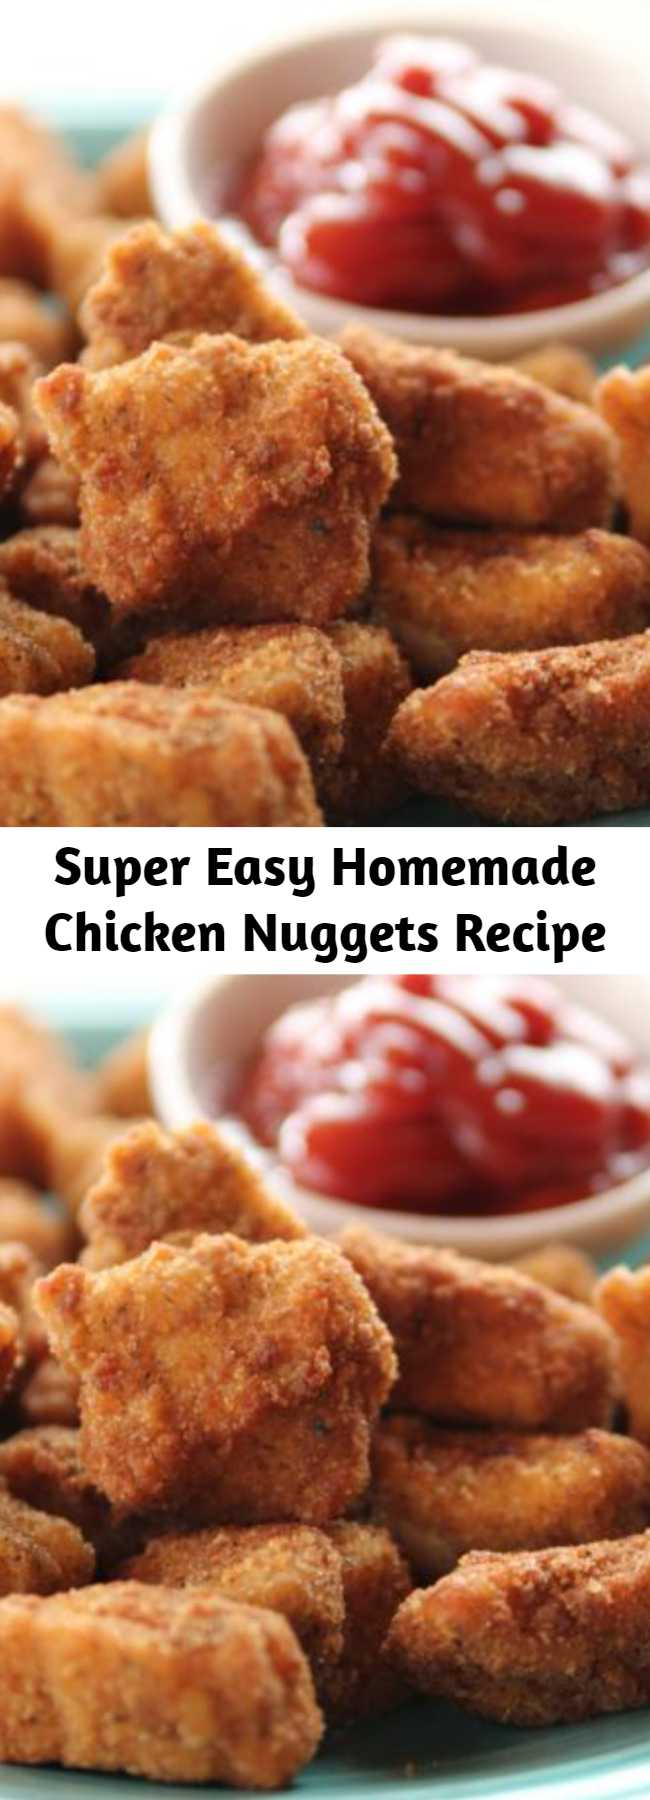 Super Easy Homemade Chicken Nuggets Recipe - Super easy to make and even more fun to eat!